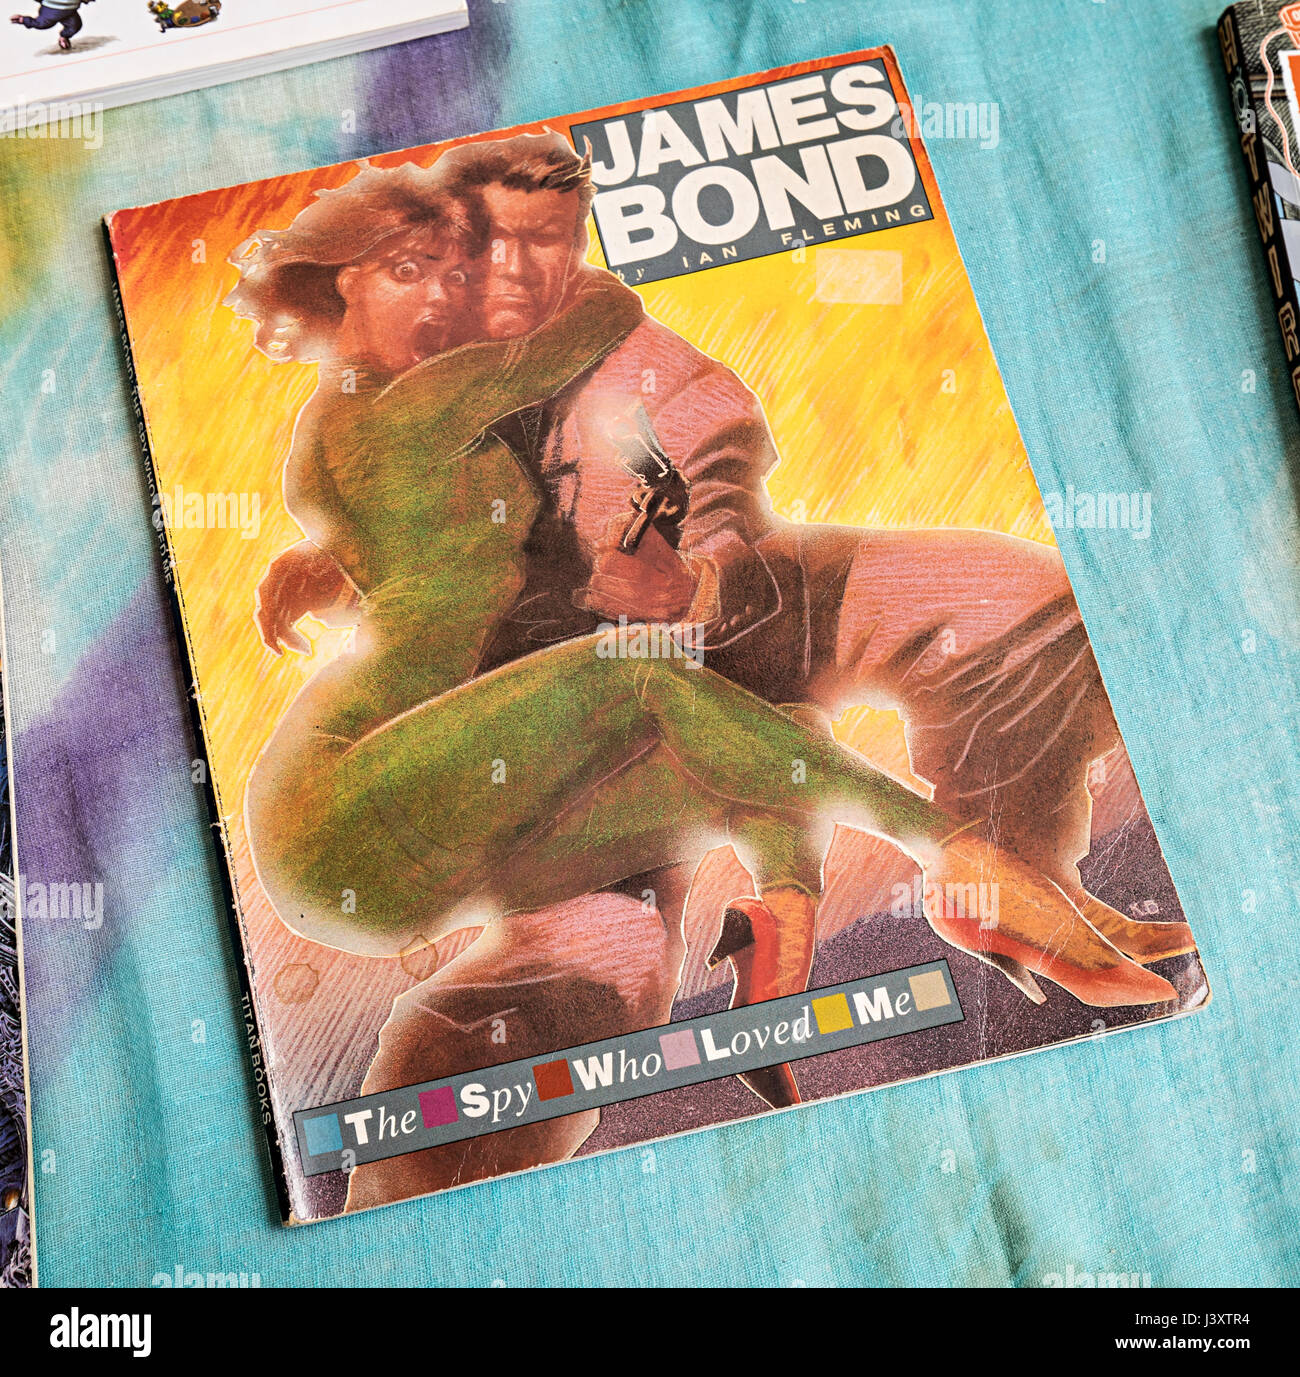 James Bond graphic comic story book of The Spy Who Loved Me published in 1989 - Stock Image